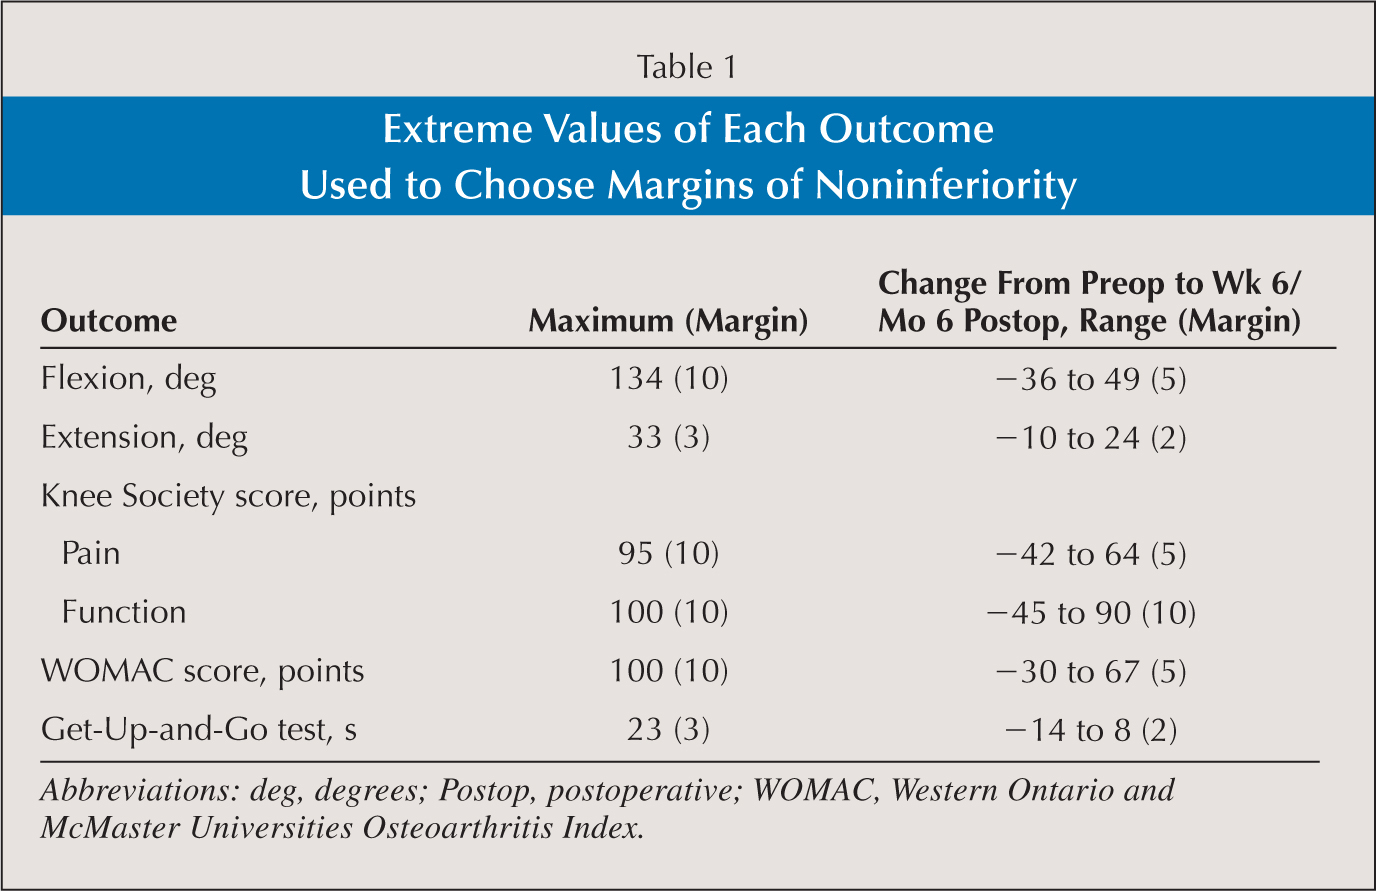 Extreme Values of Each Outcome Used to Choose Margins of Noninferiority